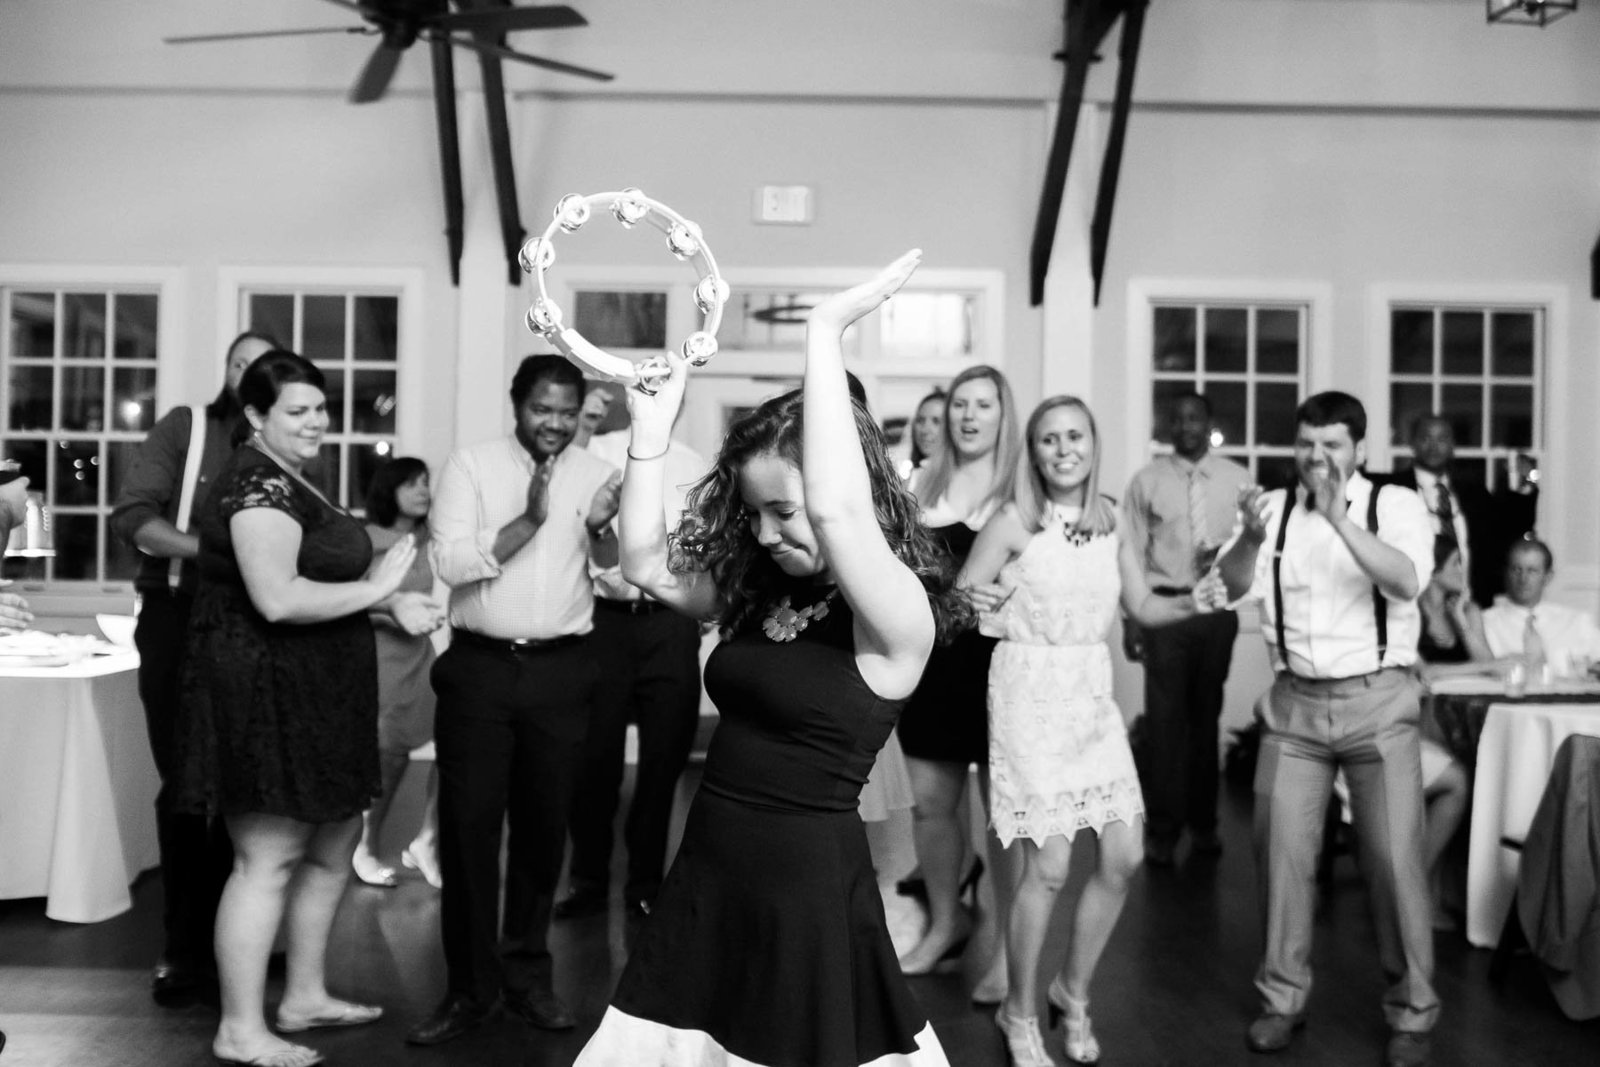 Guests dance at reception, Alhambra Hall, Mt Pleasant, South Carolina